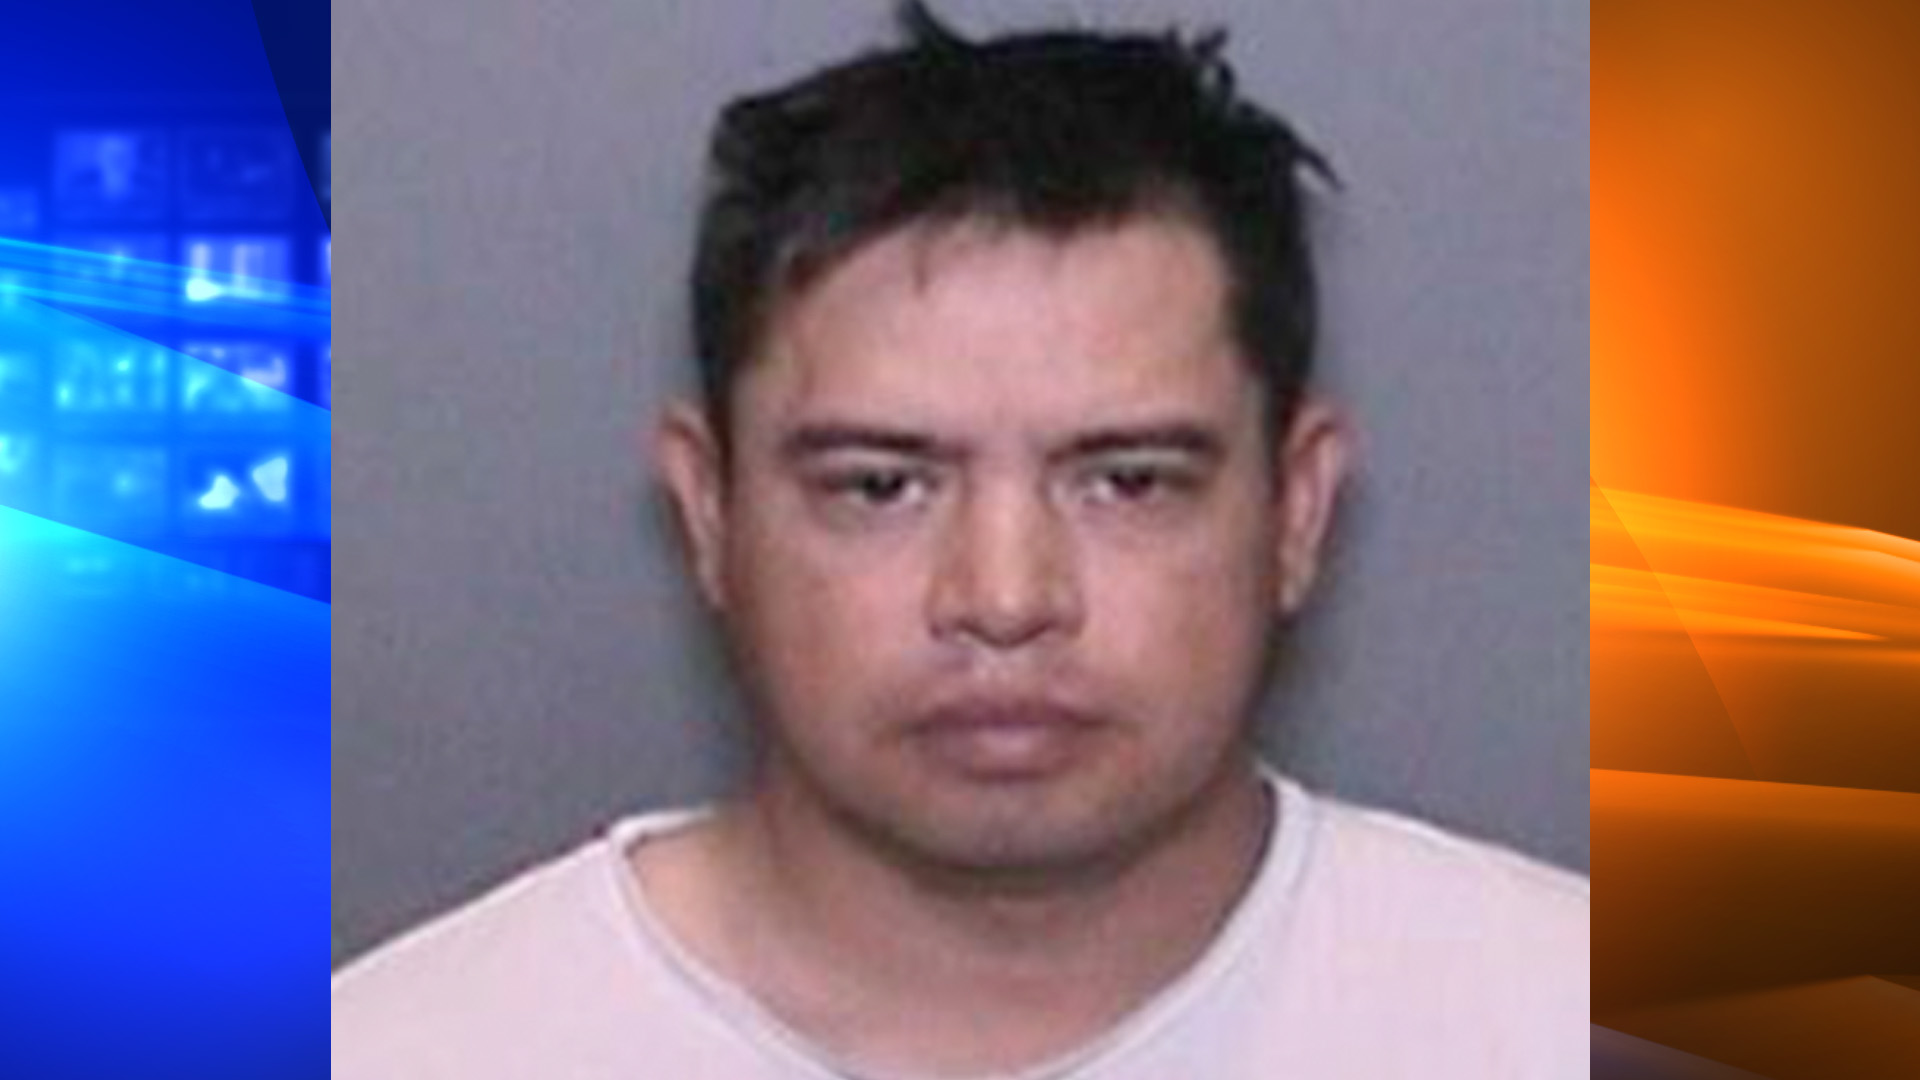 Wesley Gerardo Estrada De Leon is seen in a booking photo provided by the La Habra Police Department on Sept. 17, 2018.